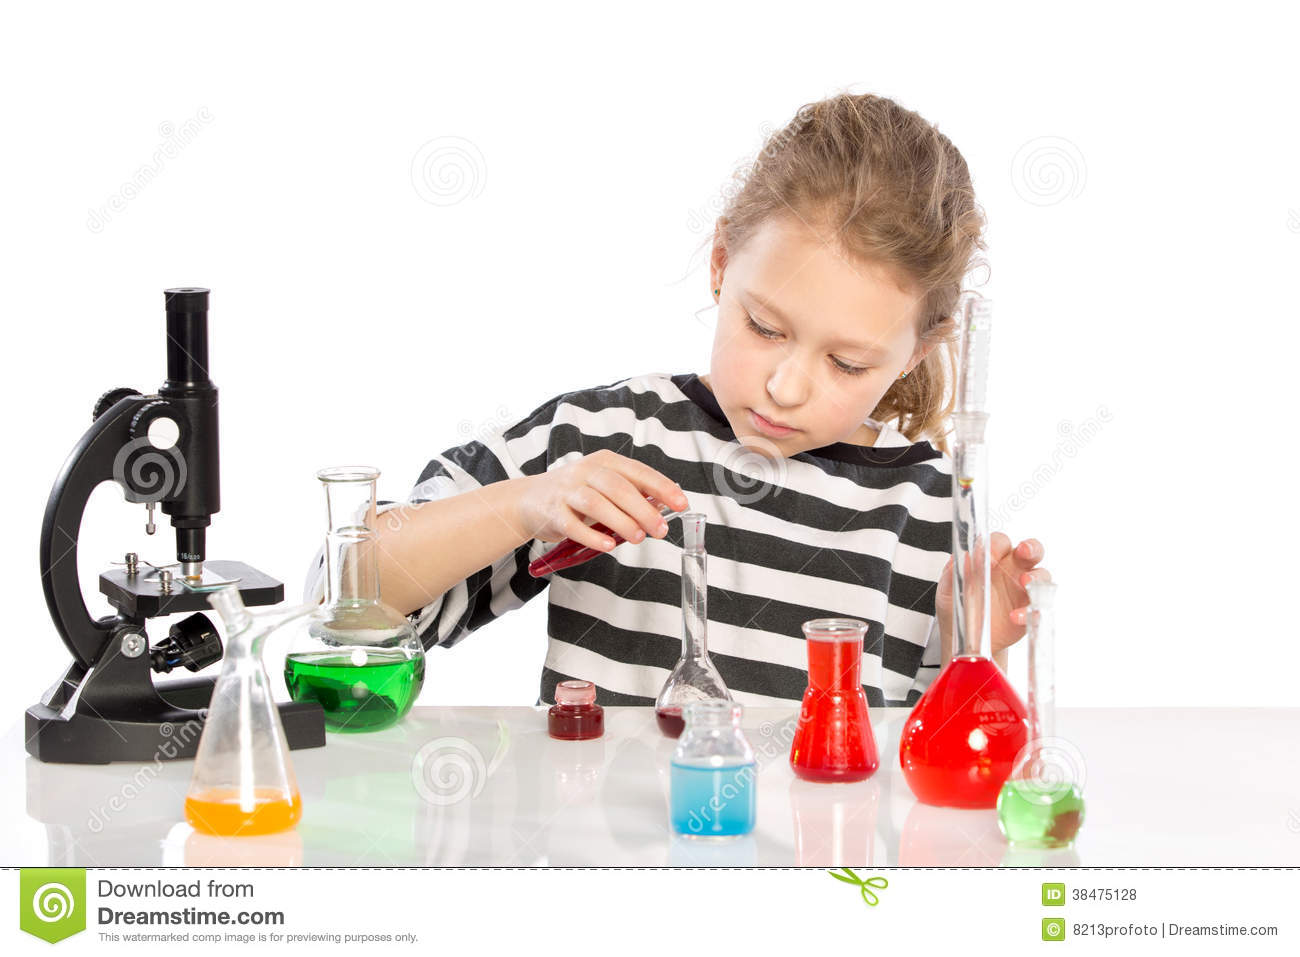 24 Free Chemistry iPad Apps For Students - eLearning Industry